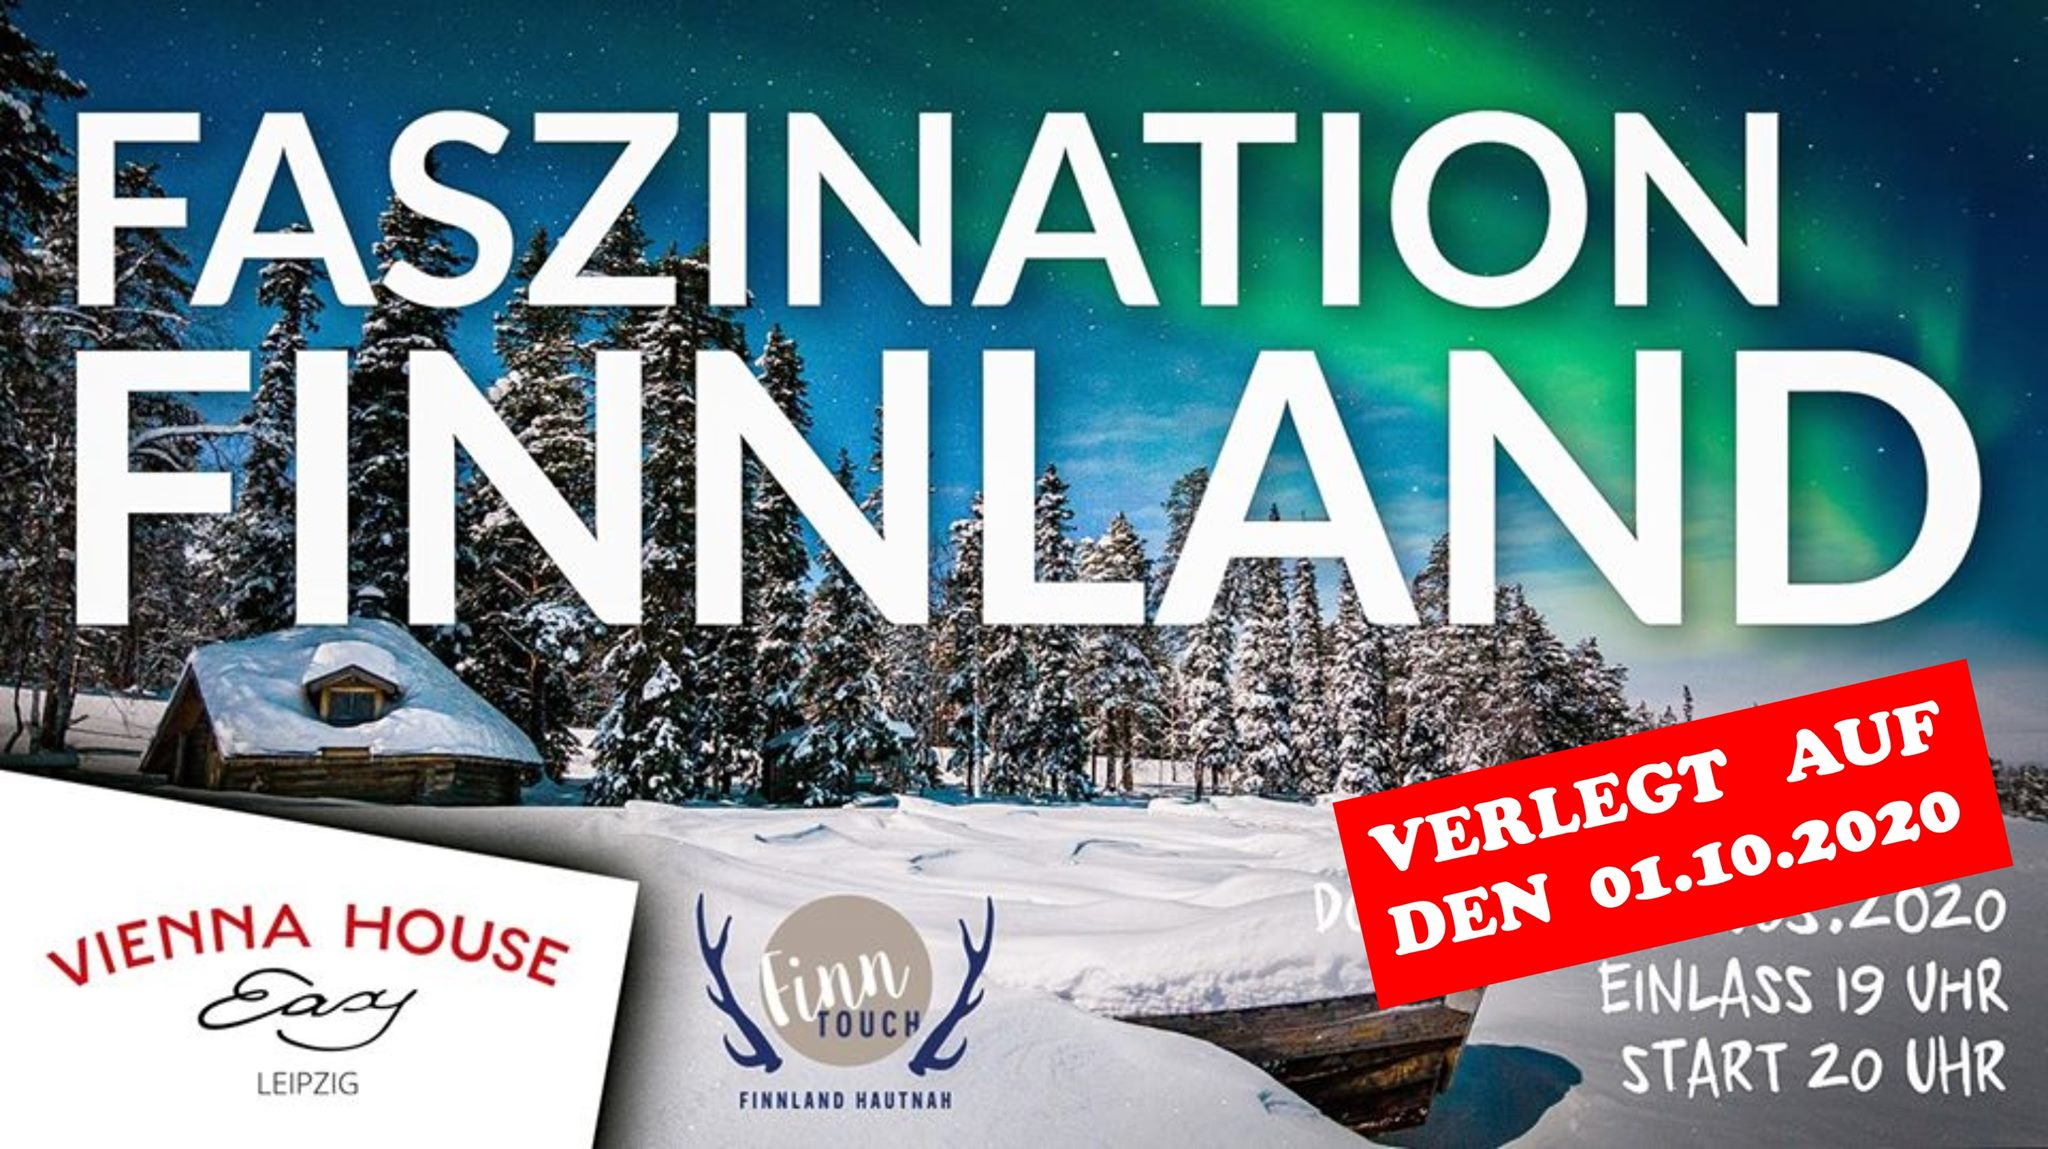 Faszination Finnland in Leipzig